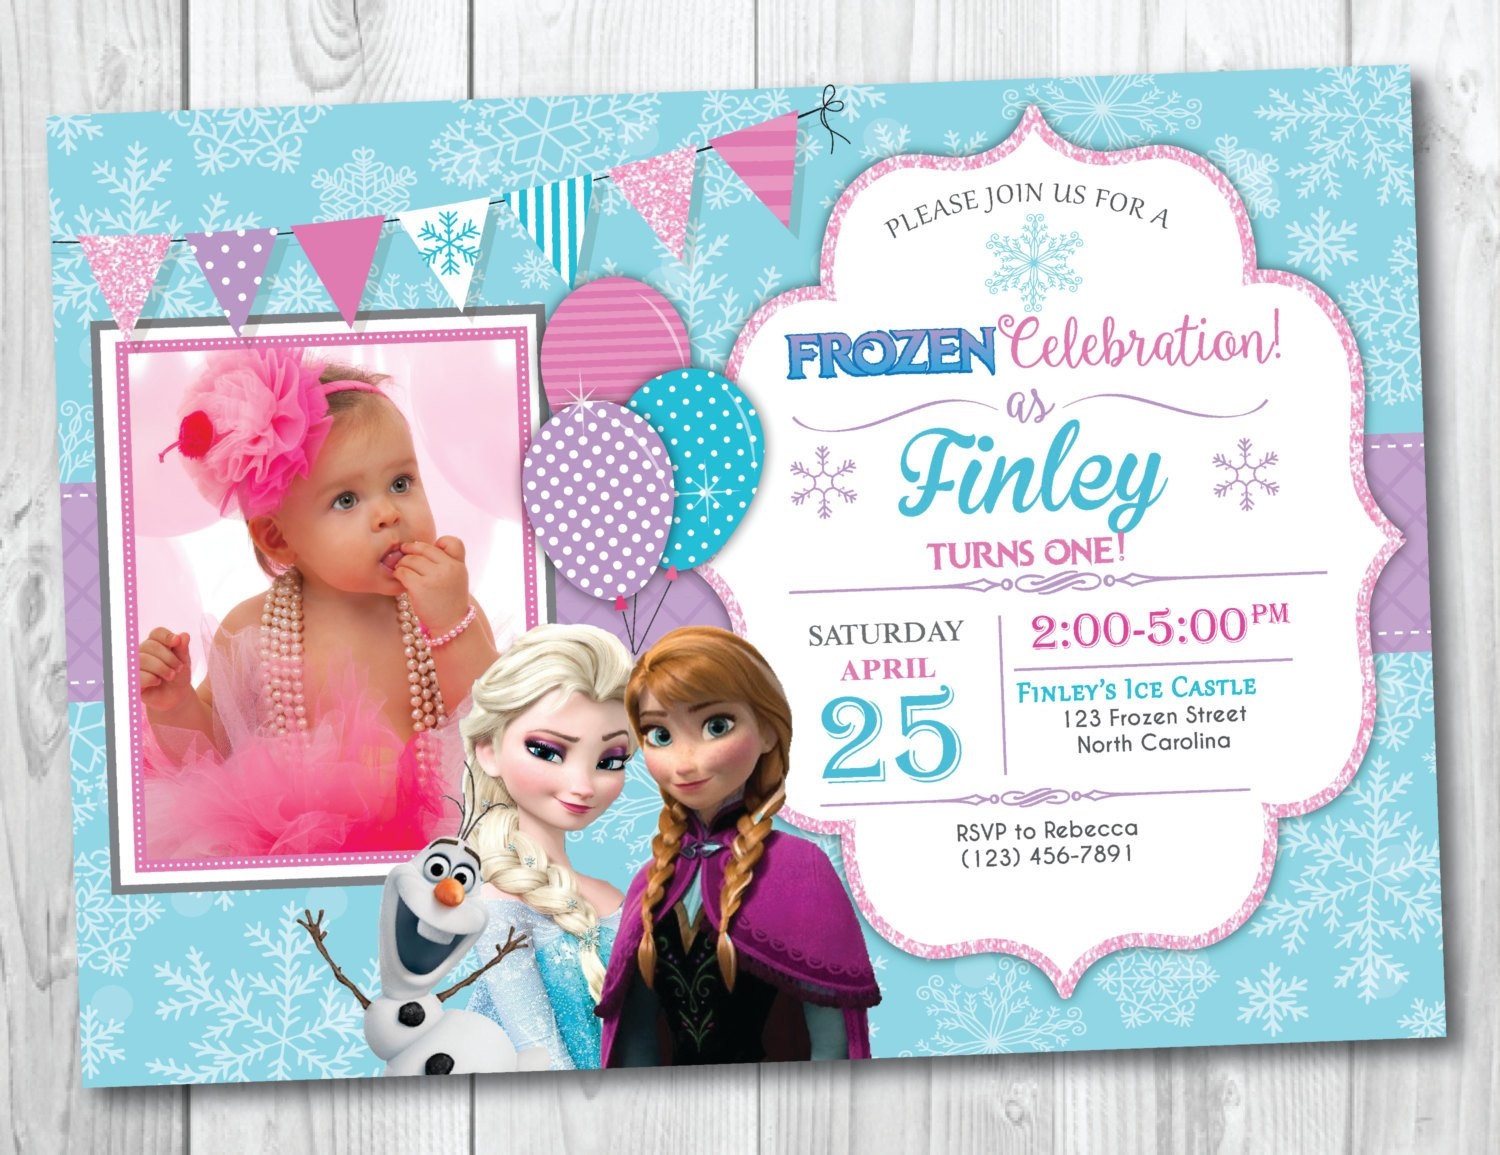 Frozen Bday Party Invitations Frozen Birthday Invitation Printable with Frozen